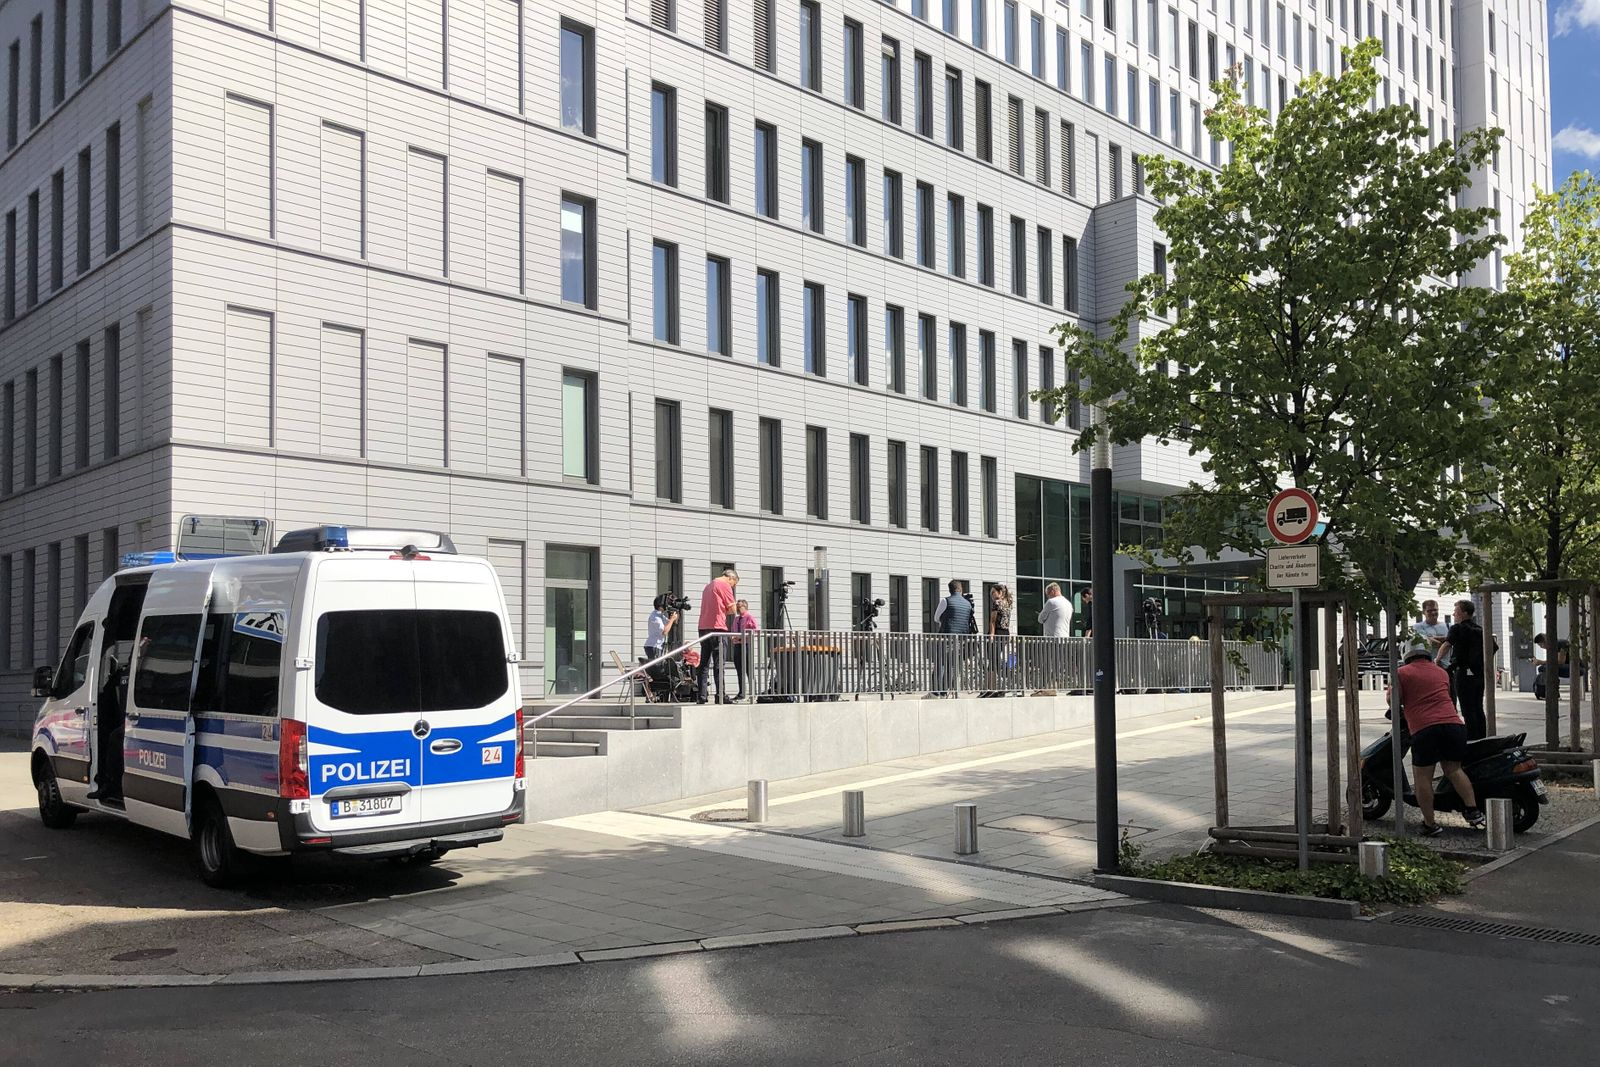 BERLIN, GERMANY - AUGUST 23, 2020: A view of Berlin s Charite hospital, where Russian opposition activist Alexei Navaln